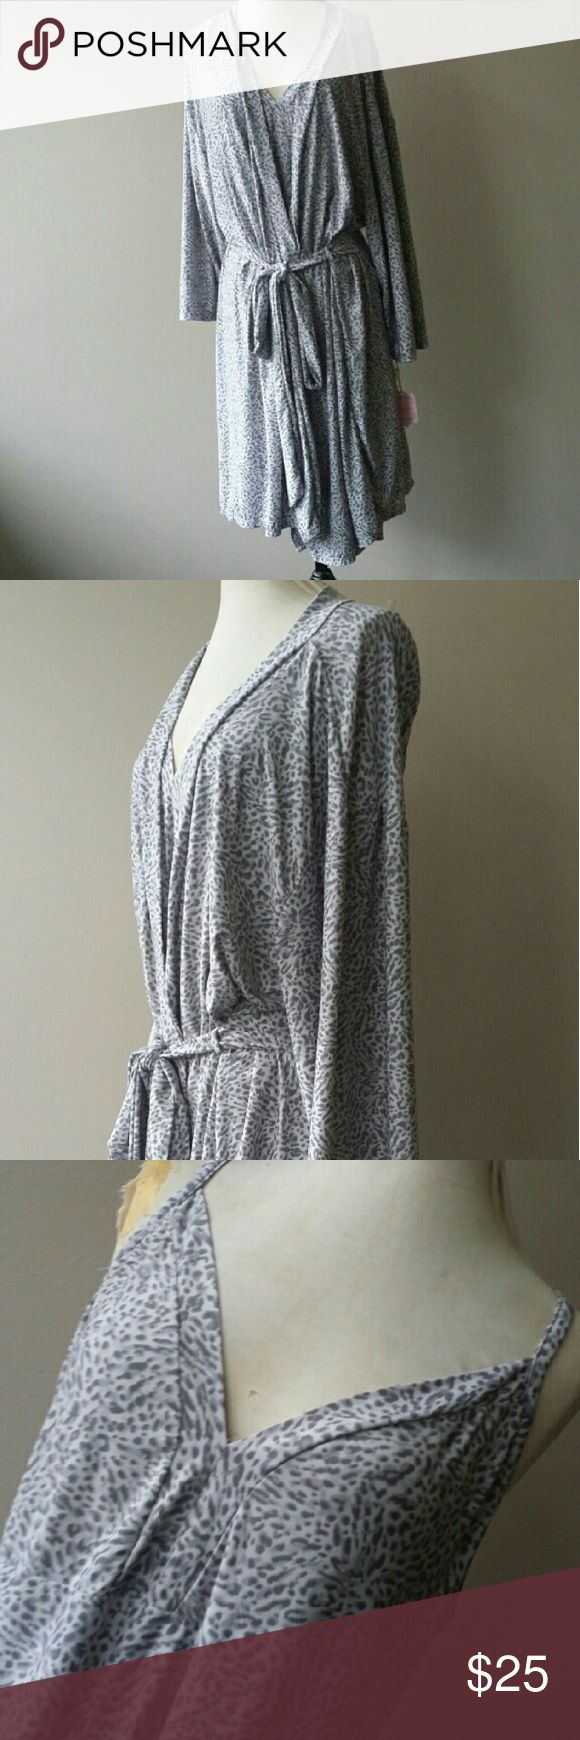 3X Plus Size Lingerie Robe & Nightie Slip Set Stretchy material.  Excellent unused condition and has been freshly laundered. Plus size 3x. Intimates & Sleepwear Robes